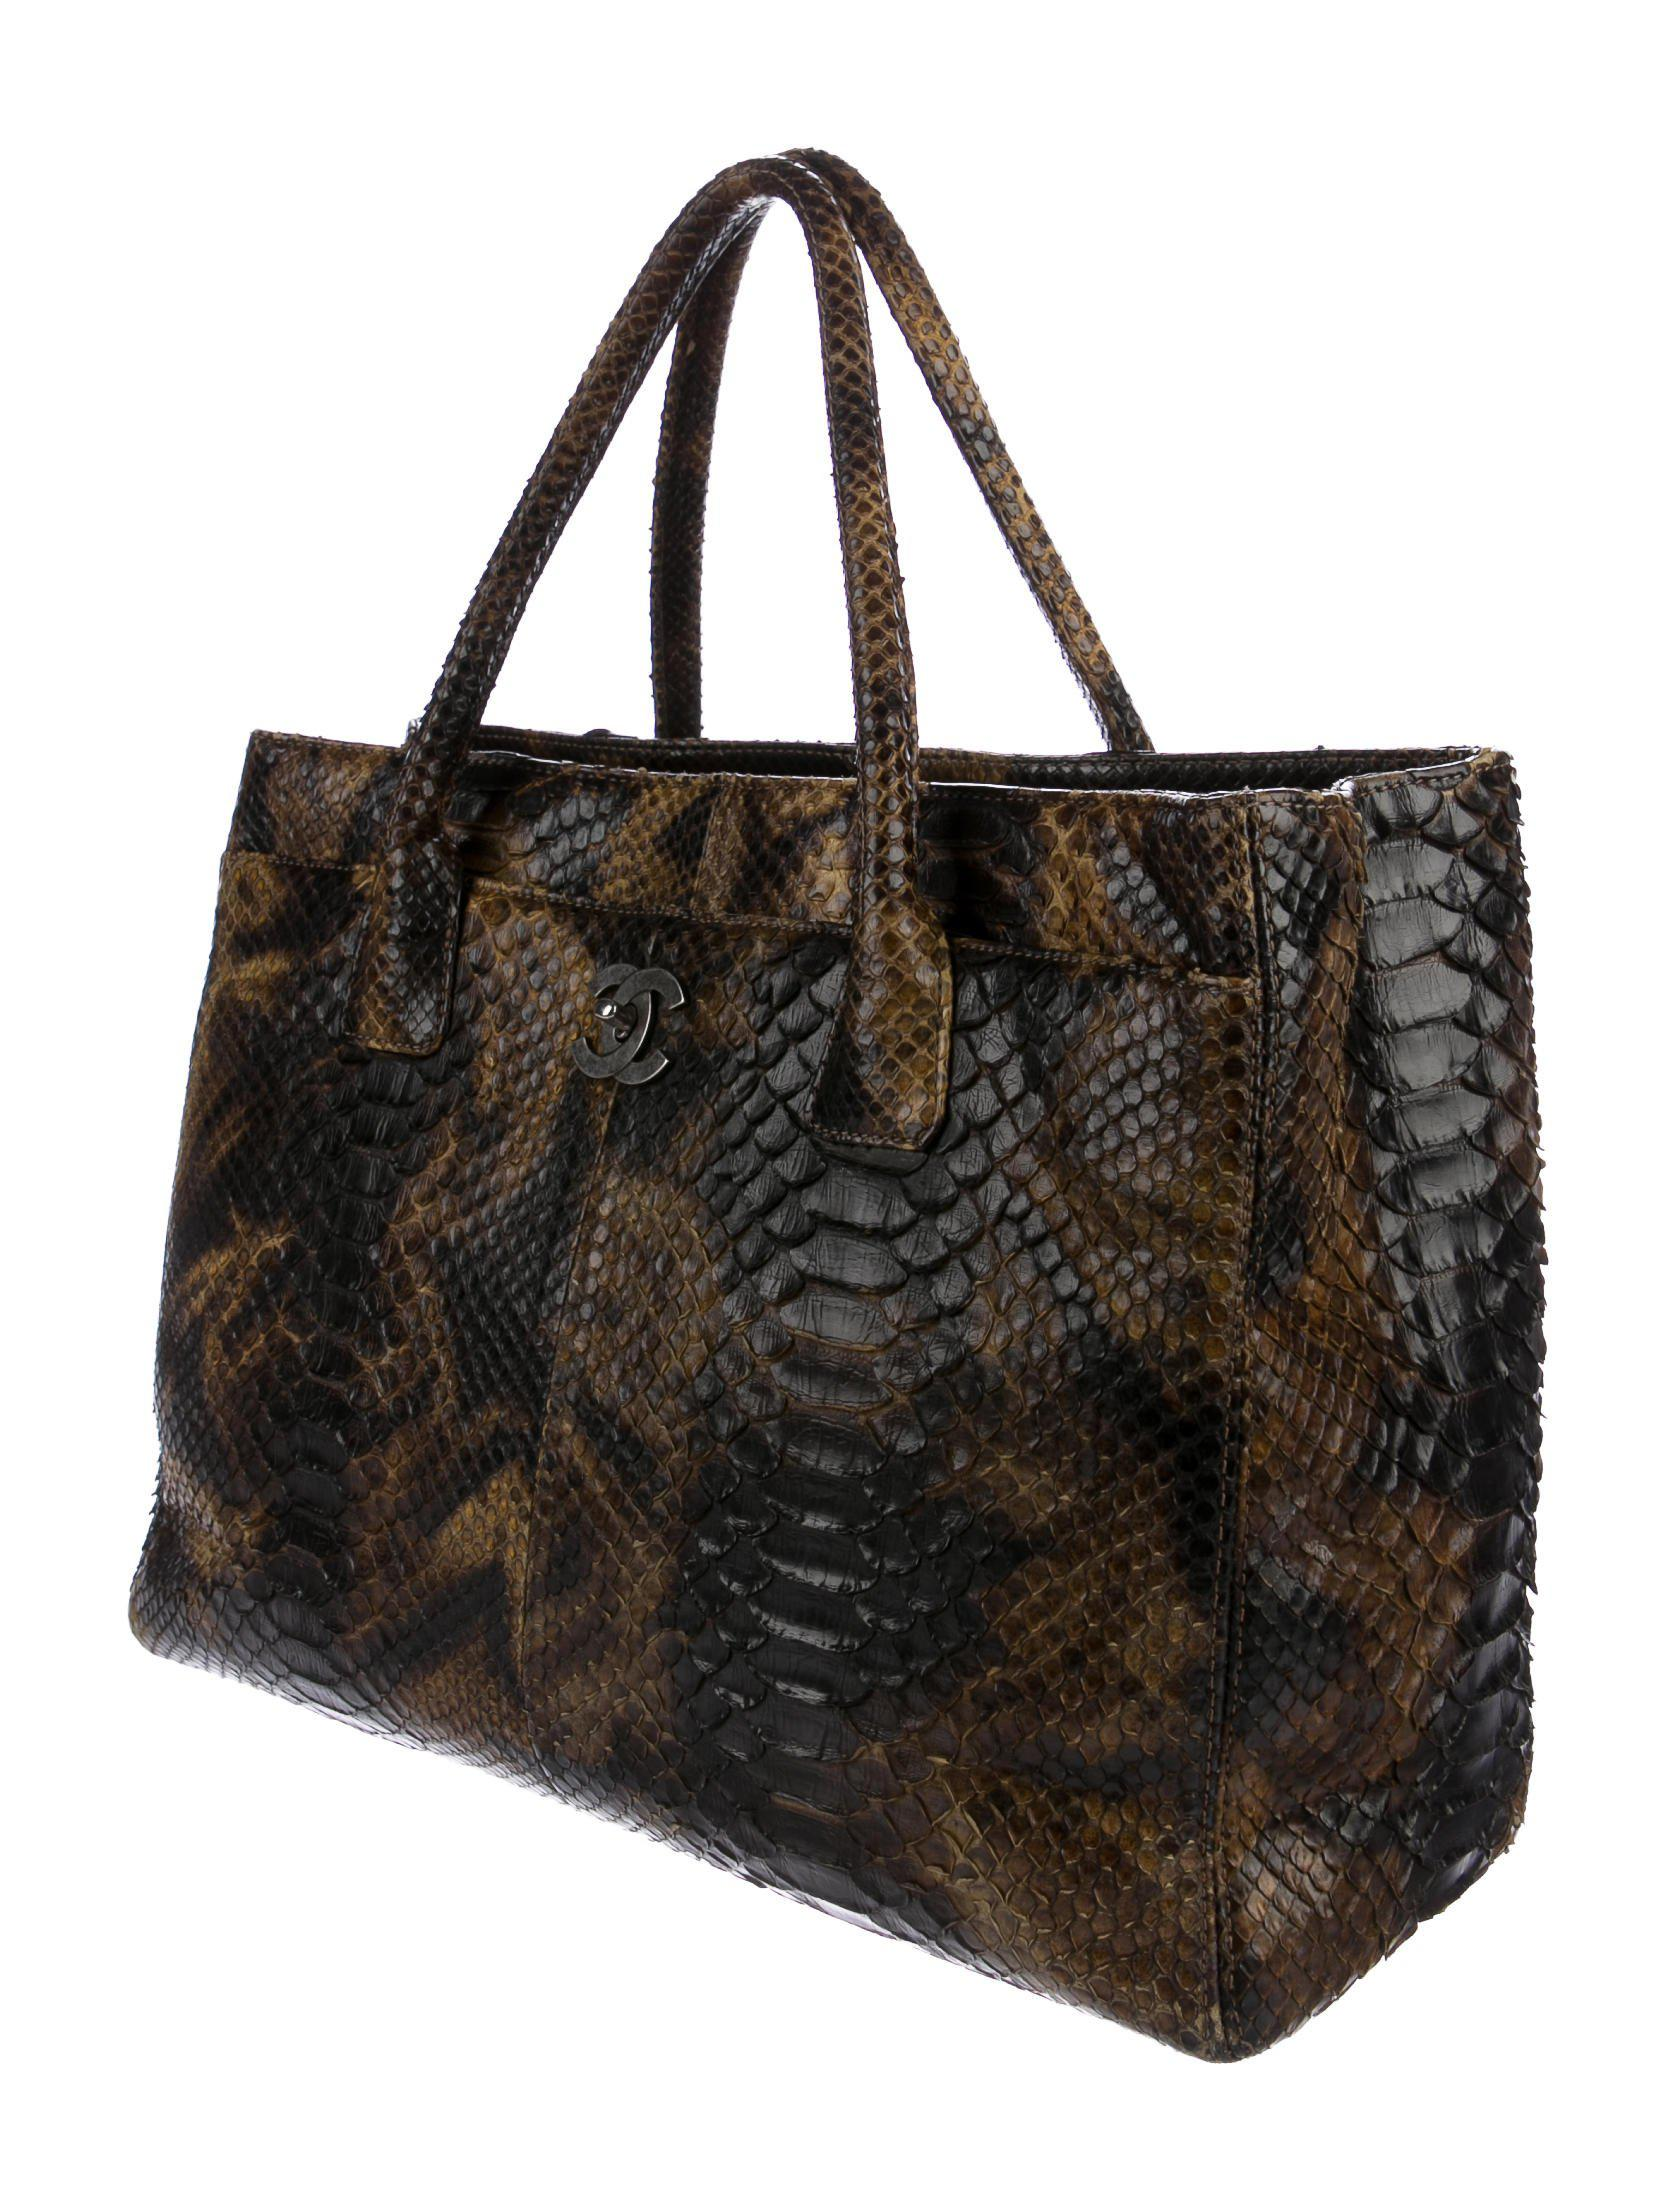 a3f7ce8167 Lyst - Chanel Python Executive Cerf Tote Brown in Metallic